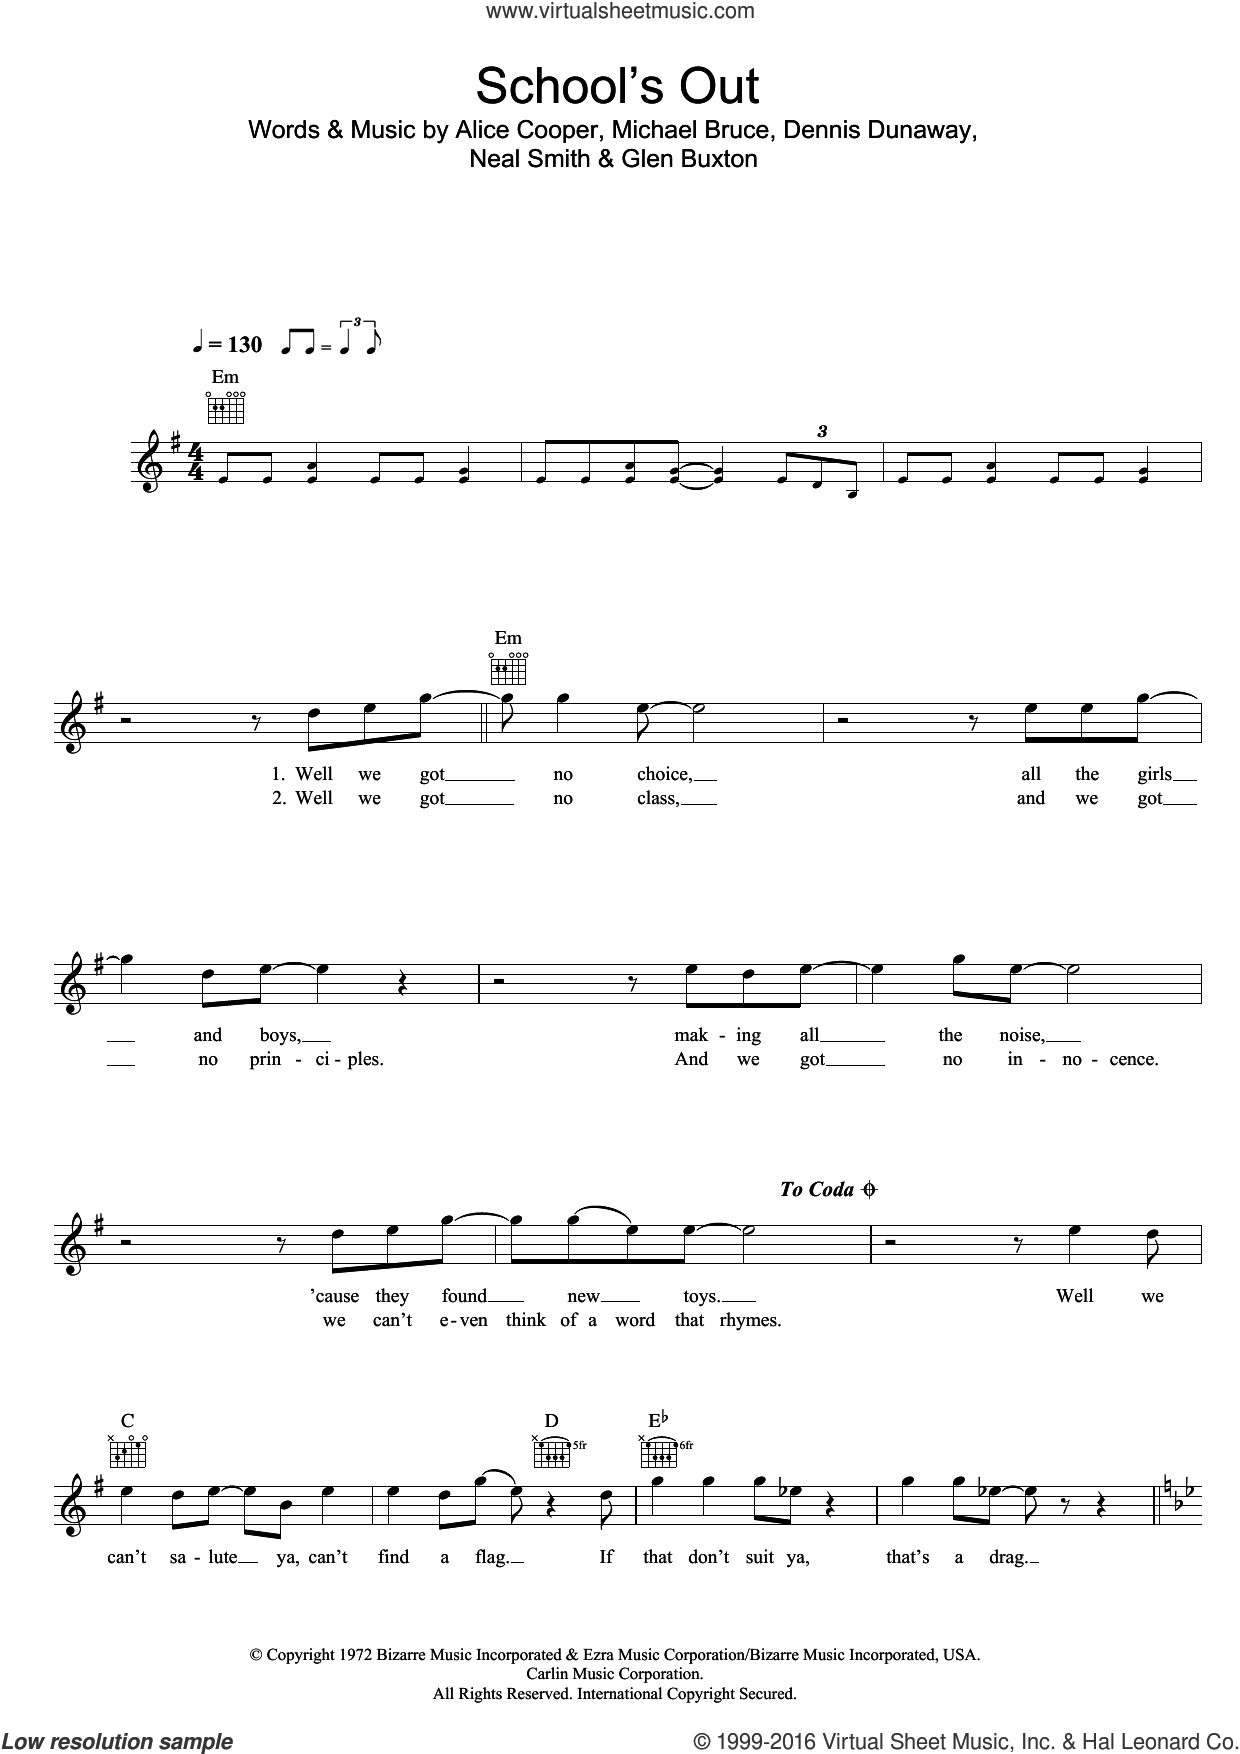 School's Out sheet music for voice and other instruments (fake book) by Alice Cooper, Dennis Dunaway, Glen Buxton, Michael Bruce and Neal Smith, intermediate skill level